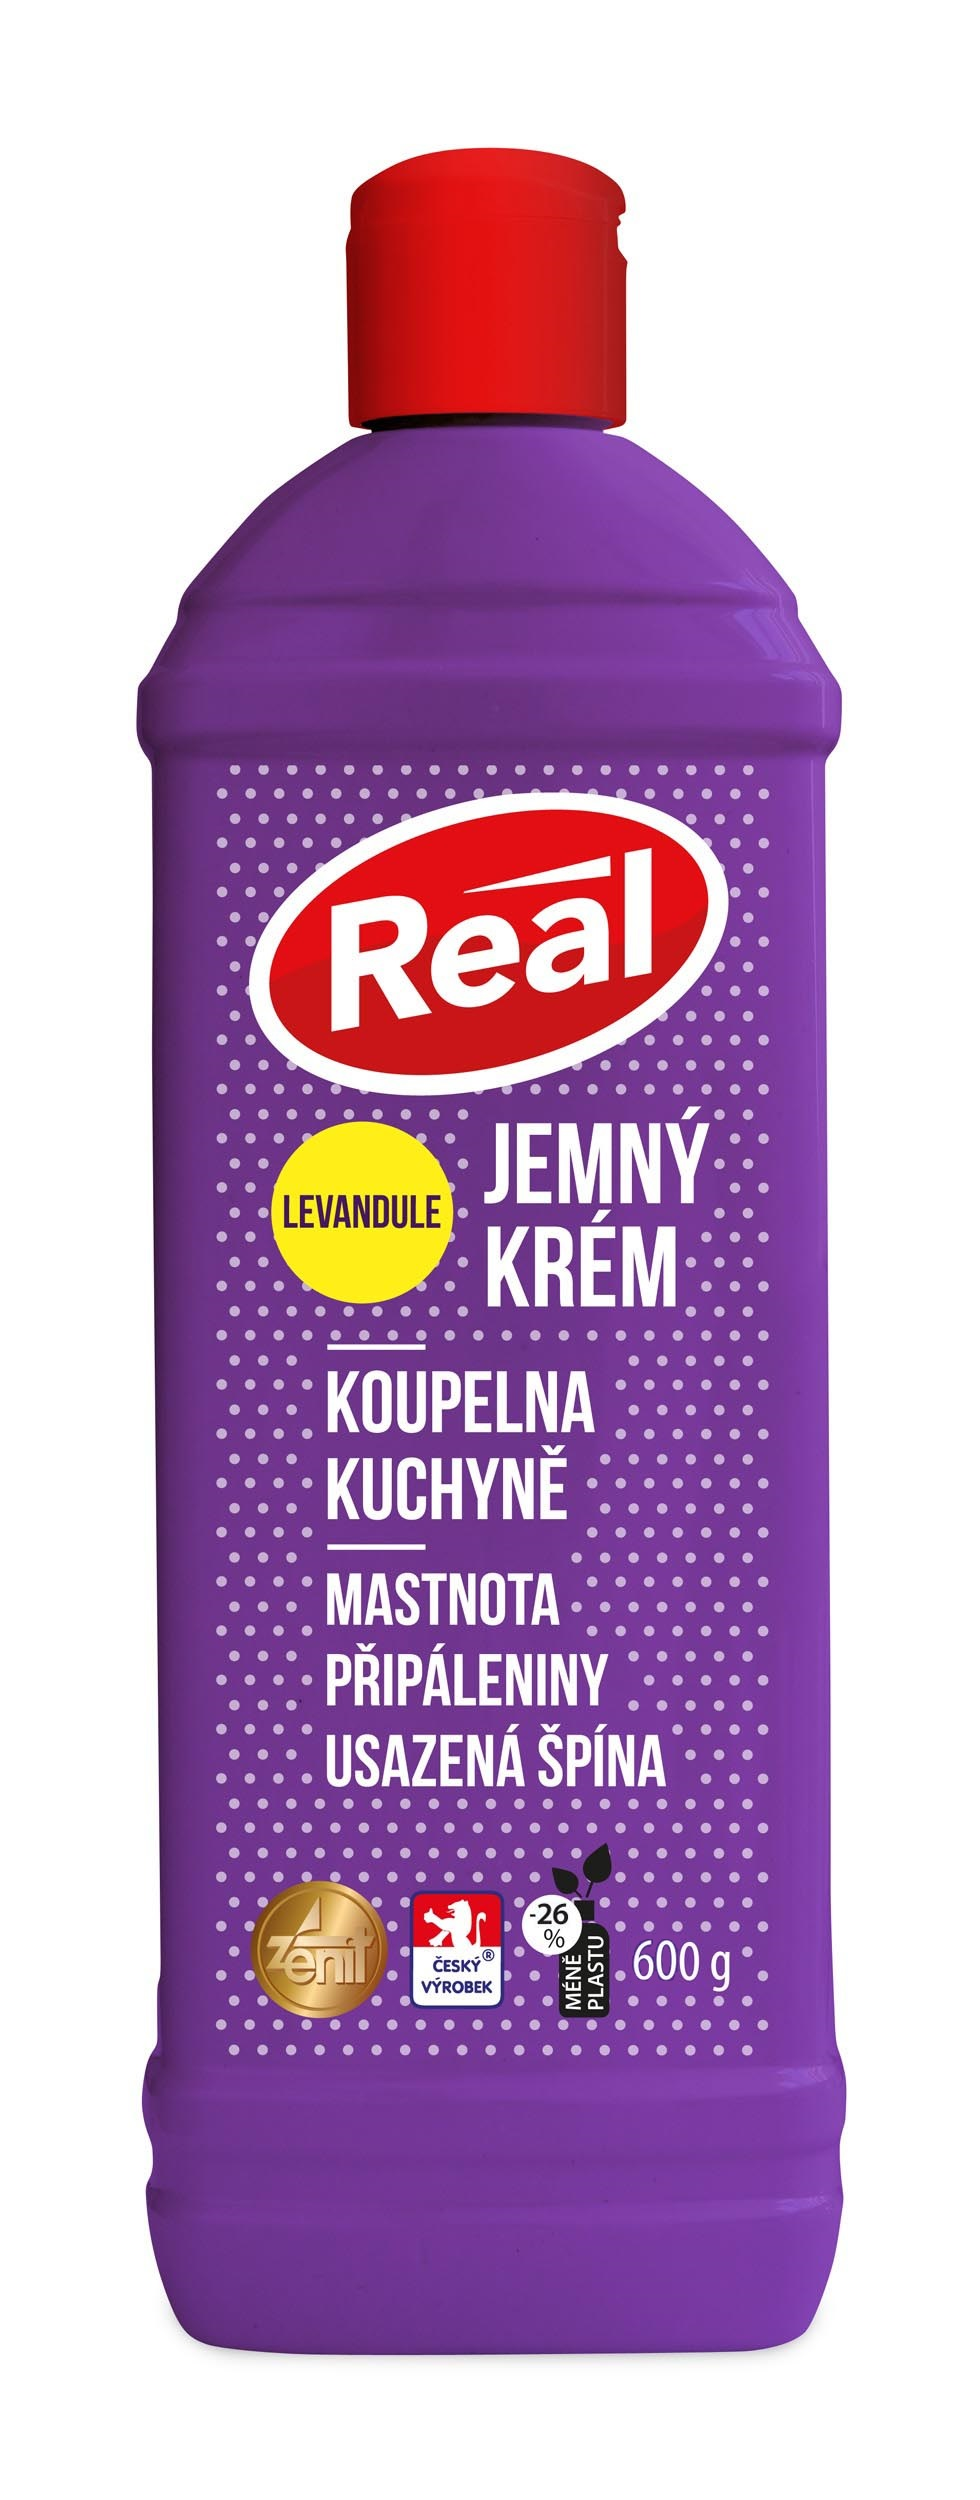 Real extra jemný levandule 600g